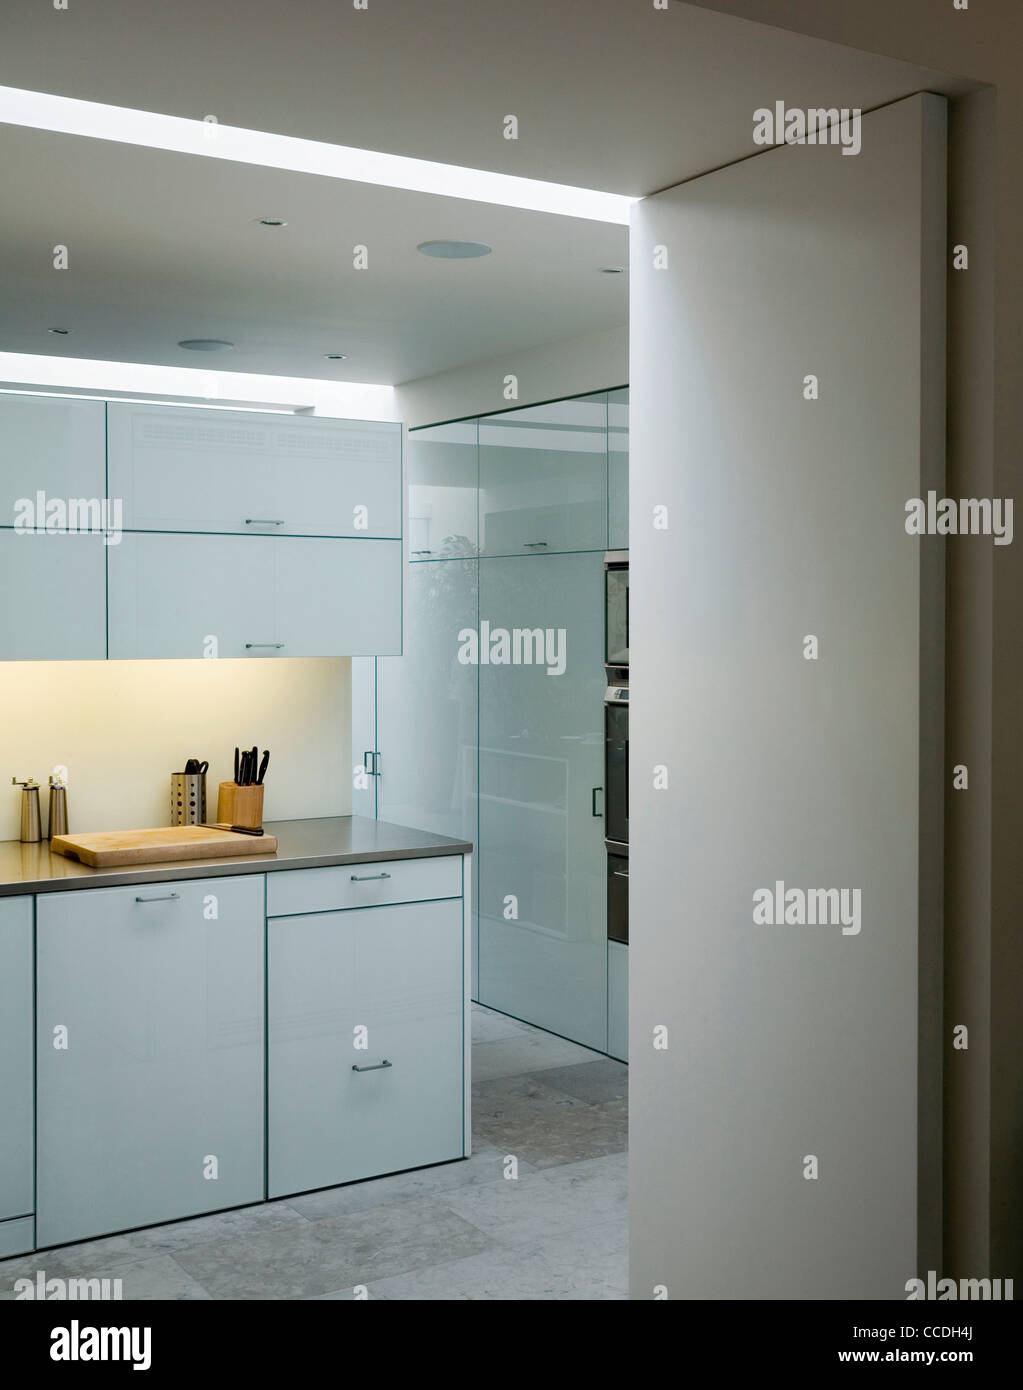 Glass Cabinets Stock Photos & Glass Cabinets Stock Images - Alamy